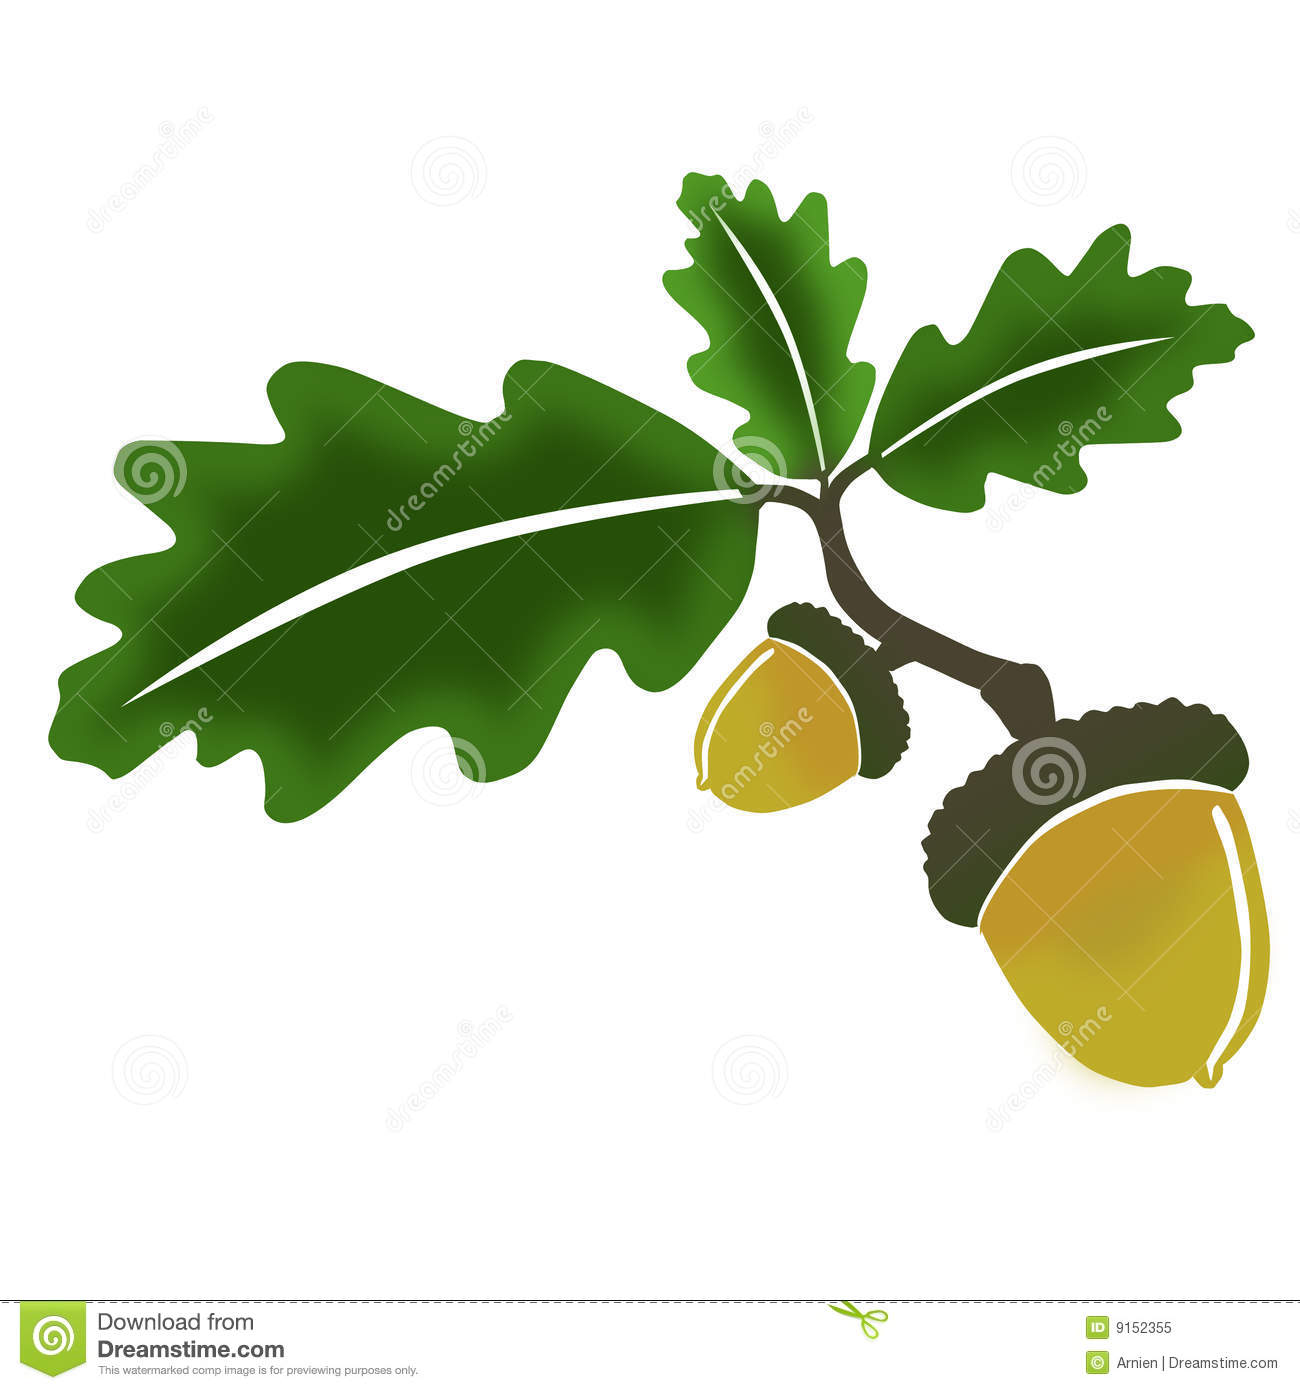 Oak fruit clipart.